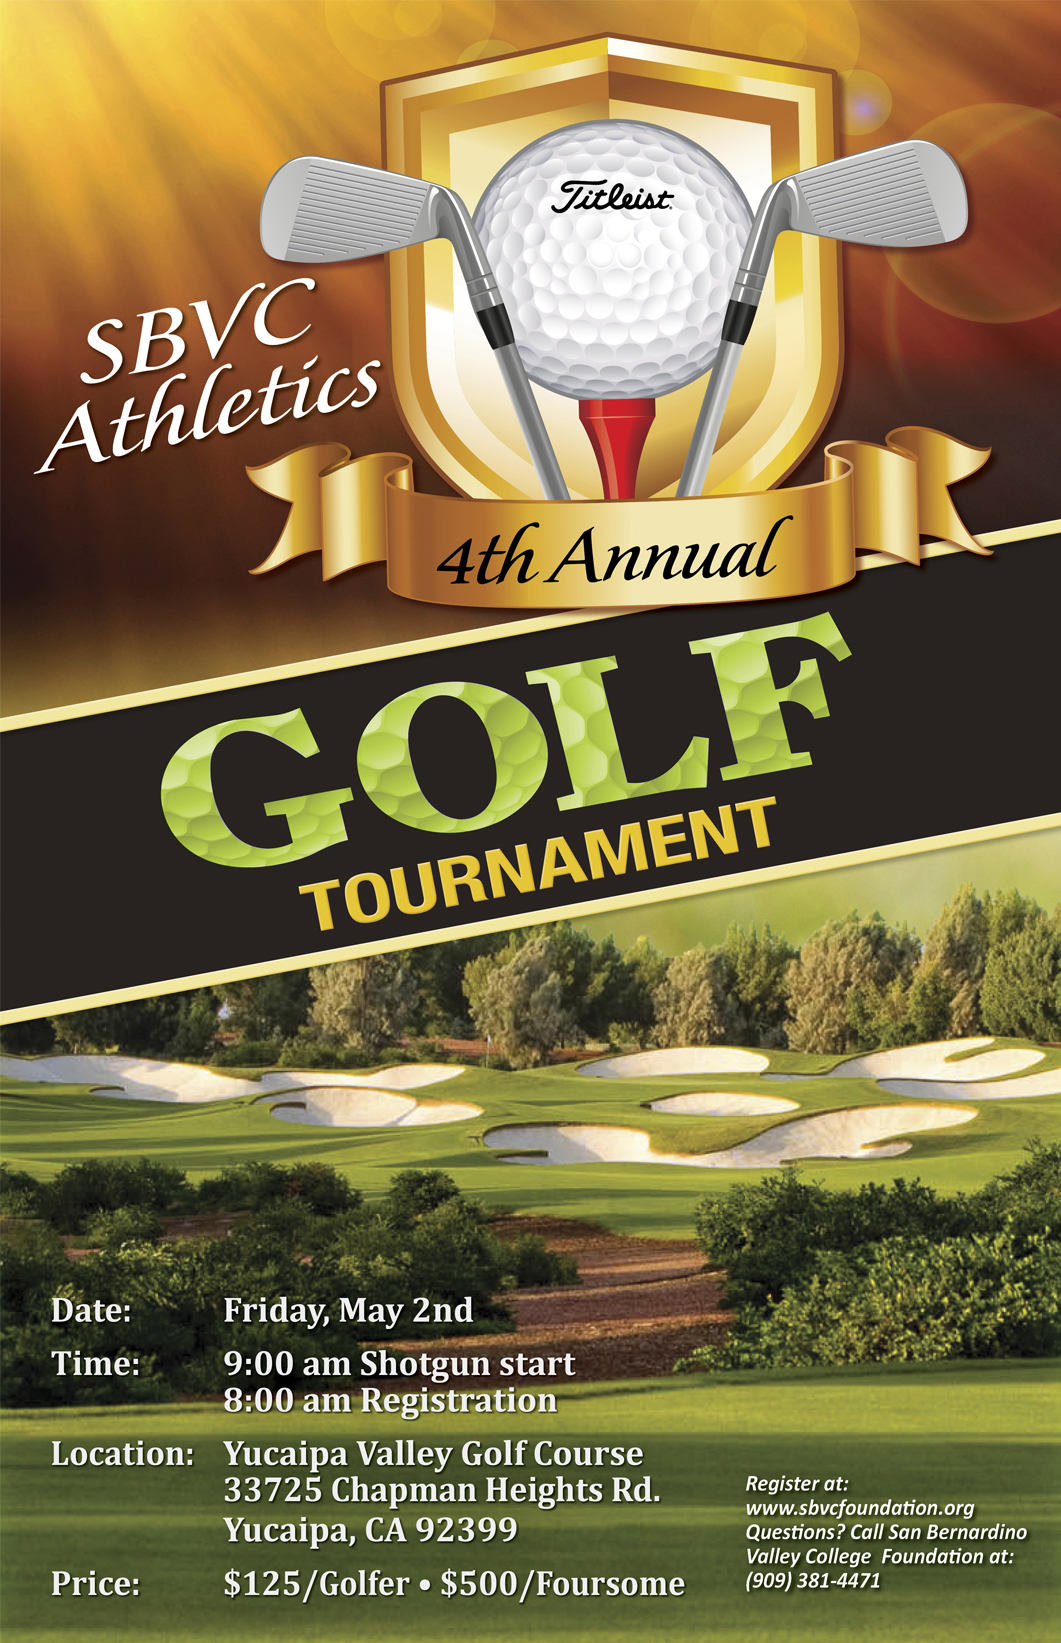 Click here to register for the golf tournament